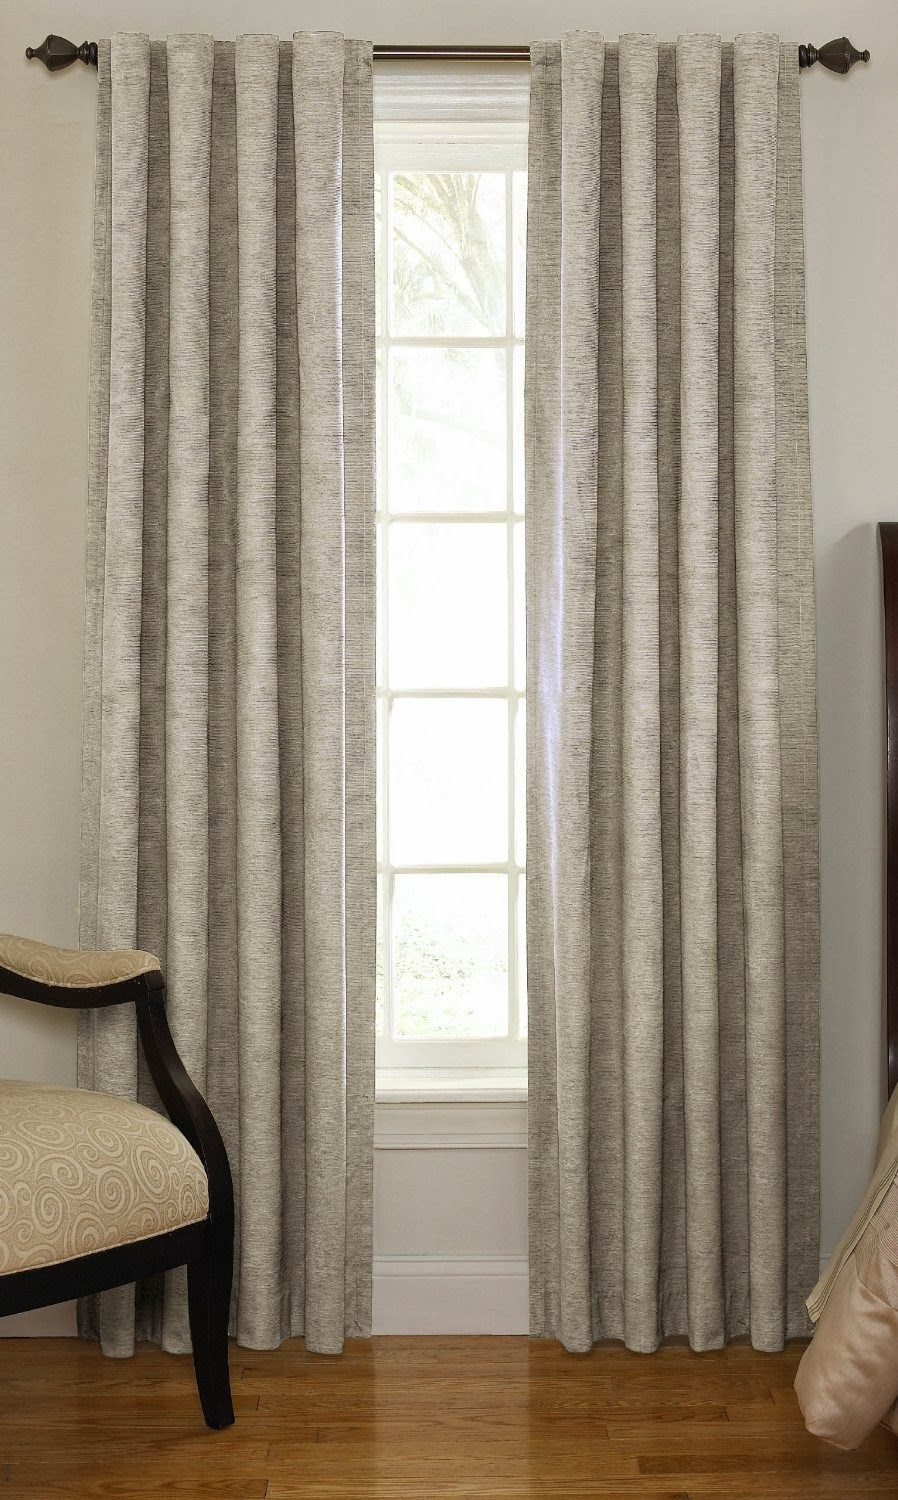 Cheap Blackout Curtains for Inspiring Home Decorating Ideas: Buy Blackout Curtains | Cheap Blackout Curtains | Affordable Blackout Curtains